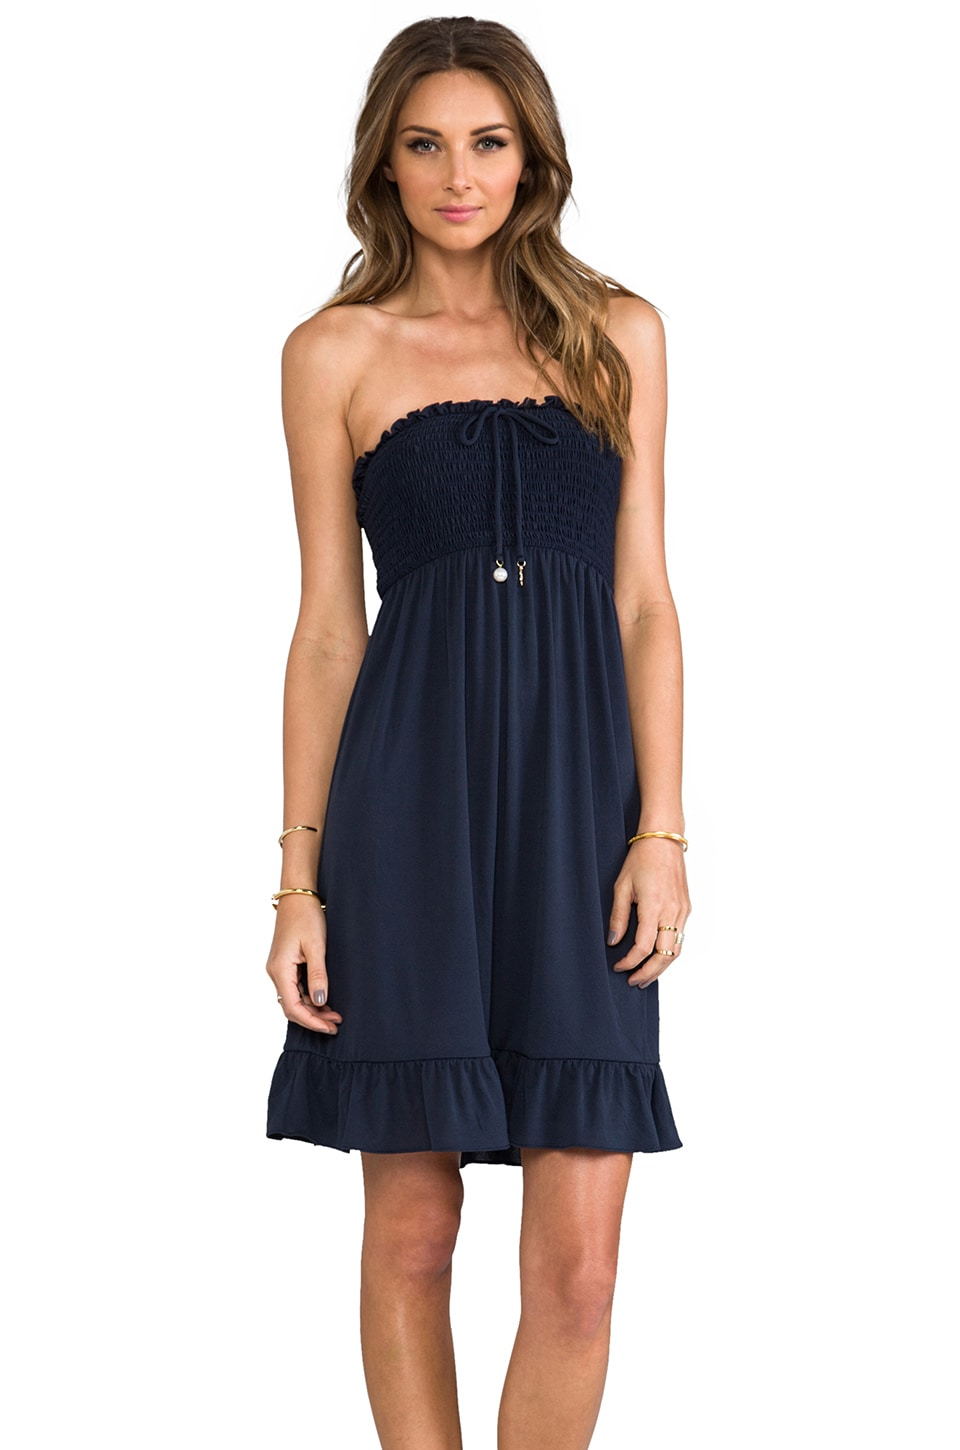 Juicy Couture Bow Chic Cover Up Dress in Regal